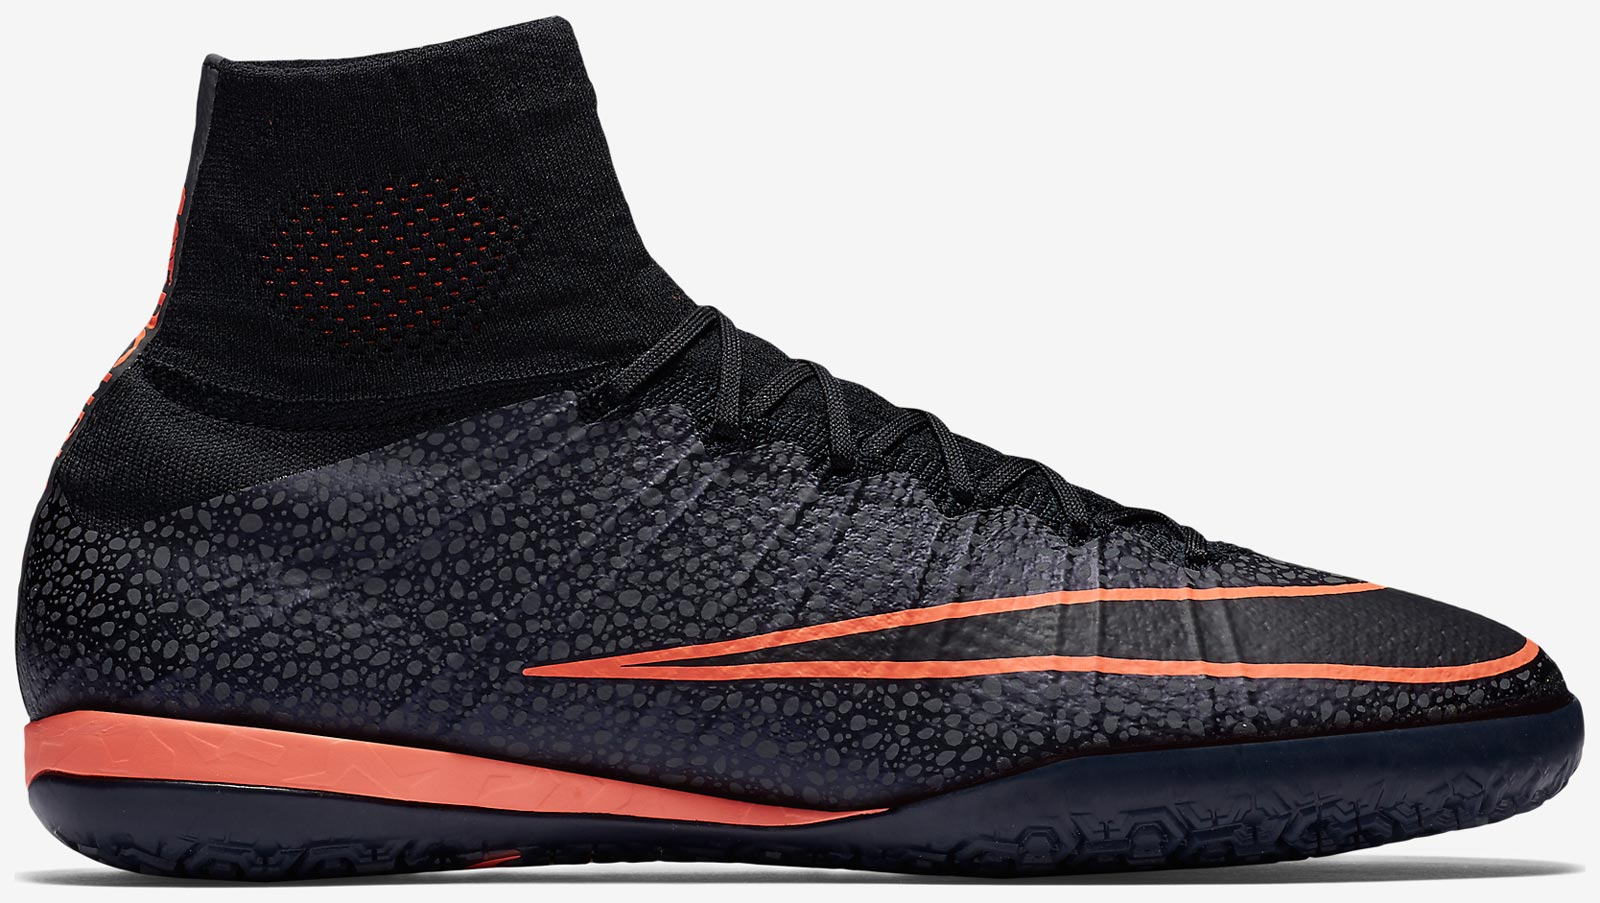 separation shoes c1d52 fb74b Cheap Nike Mercurial X Proximo 2016 Safari Boots Released ...